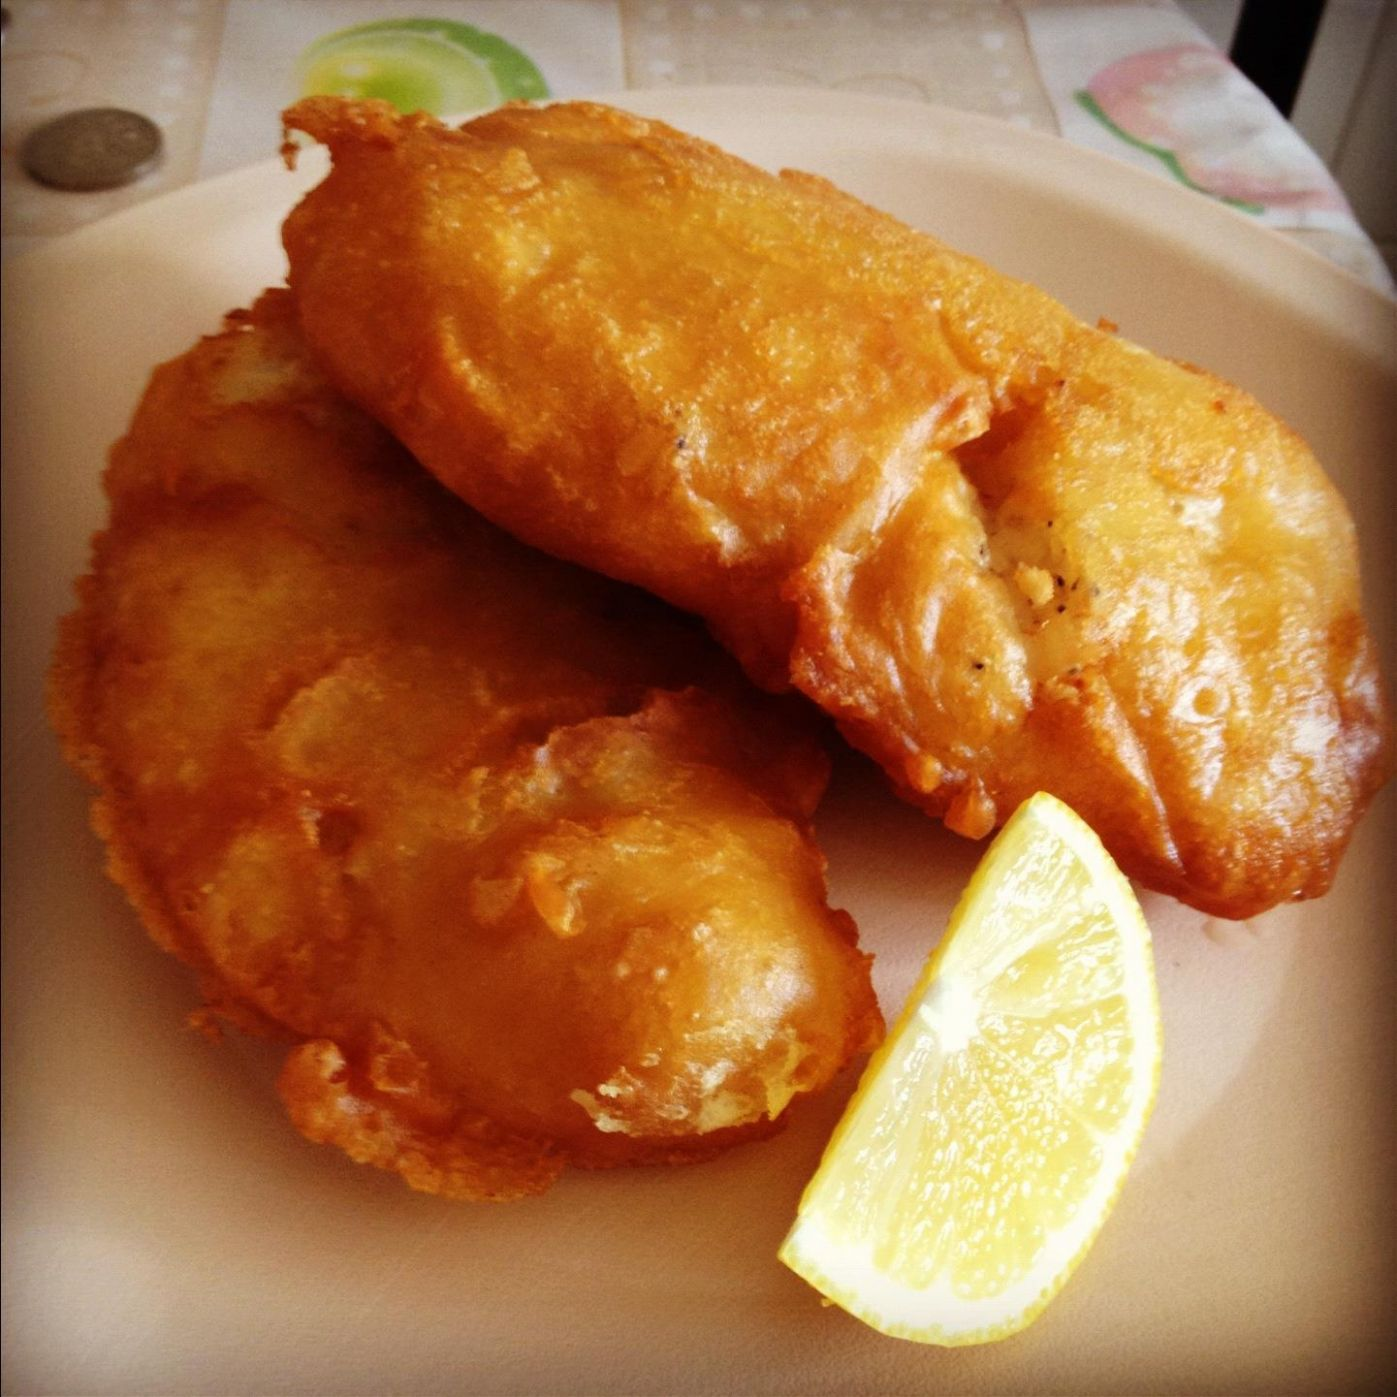 Shallow fried fish recipe - All recipes UK - Recipe Fish Batter Shallow Frying